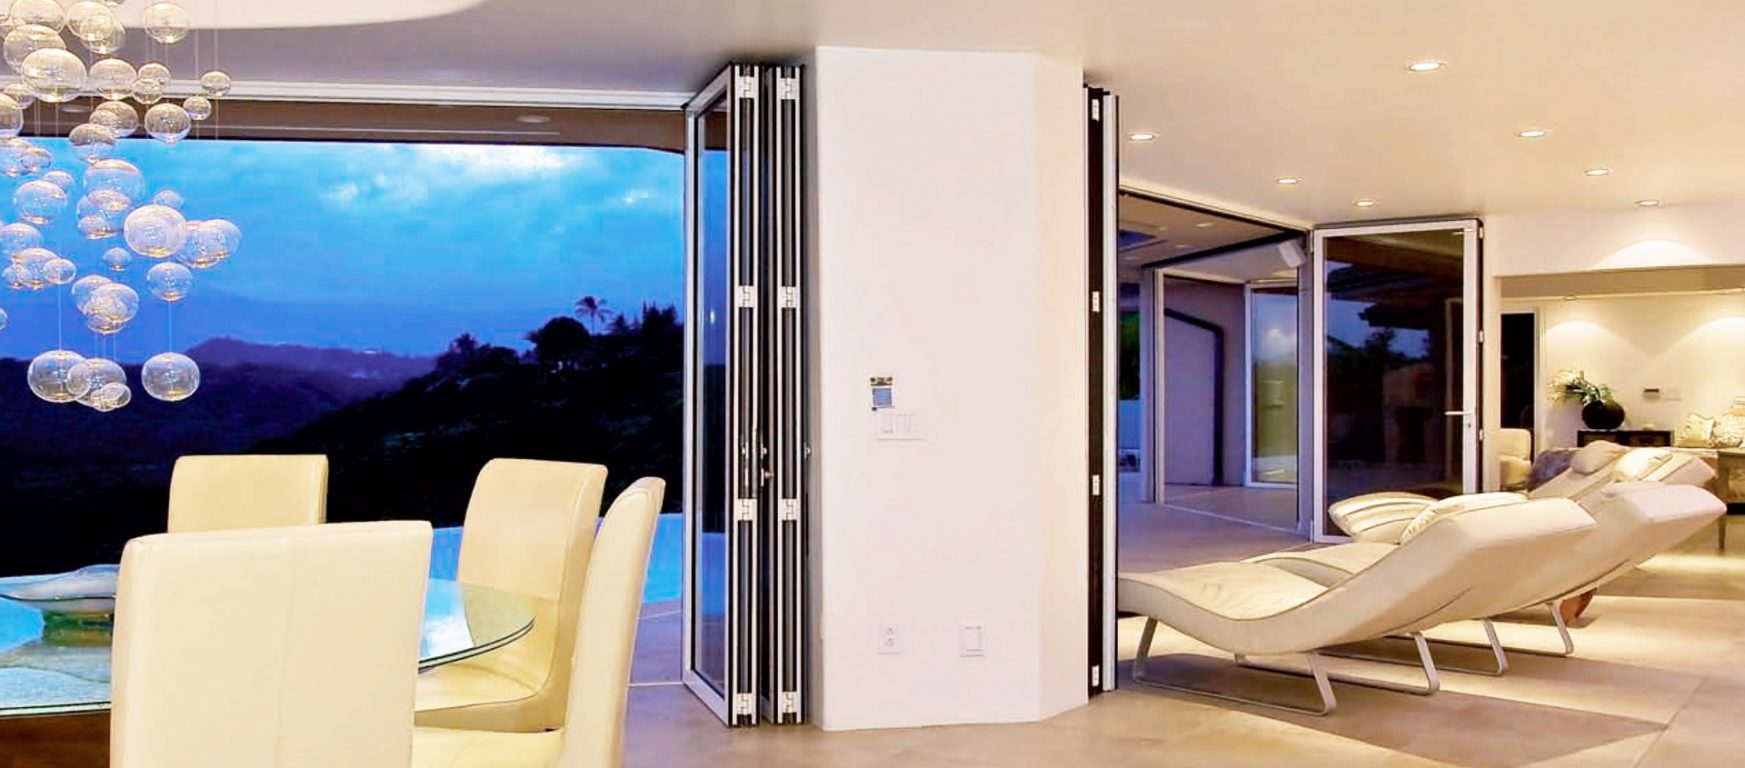 Sunflex SF 75H framed glass doors